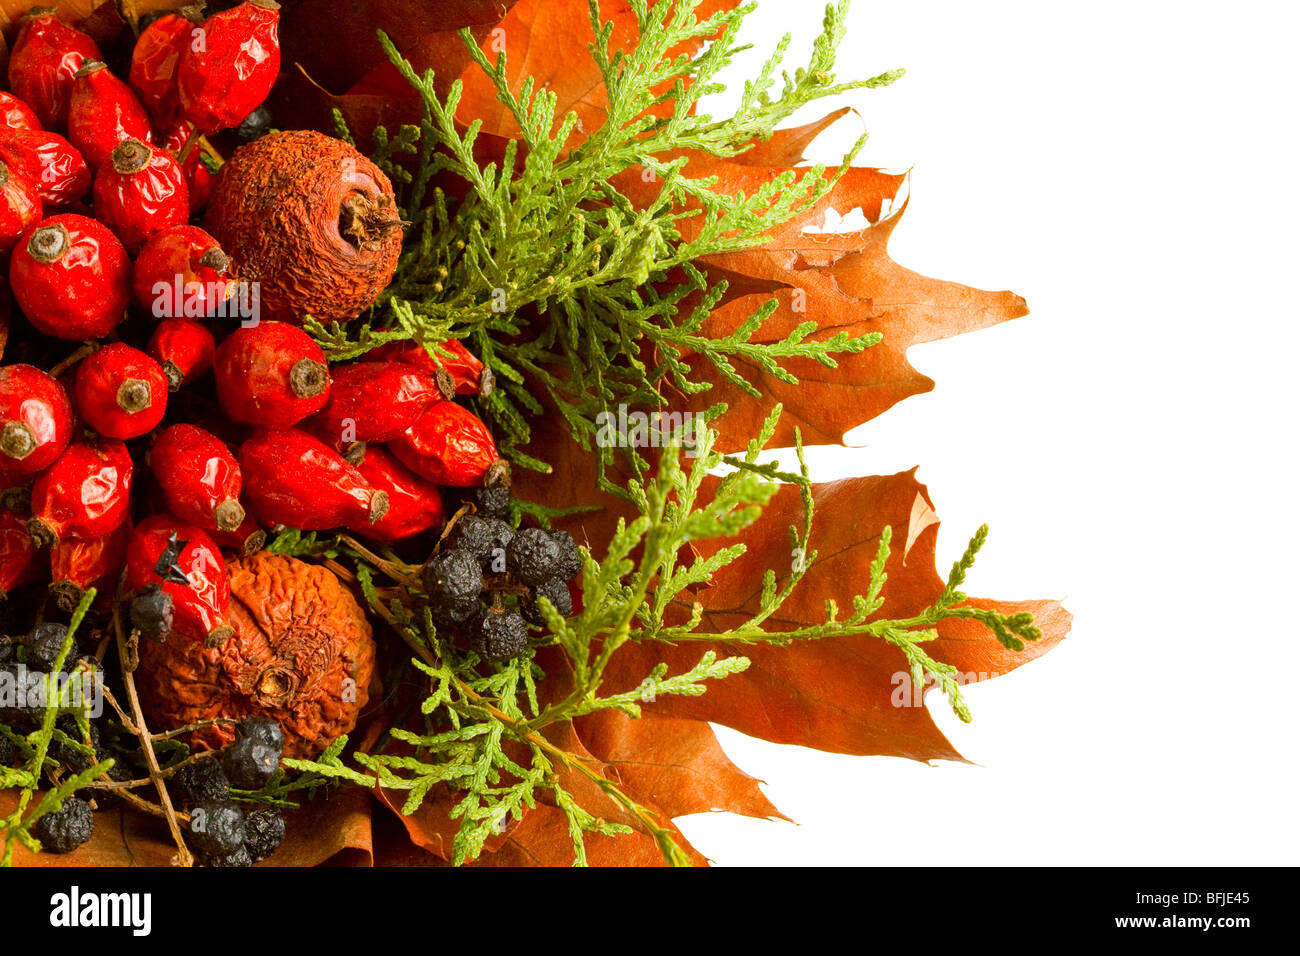 Dry autumn plants and fruits isolated on white - Stock Image